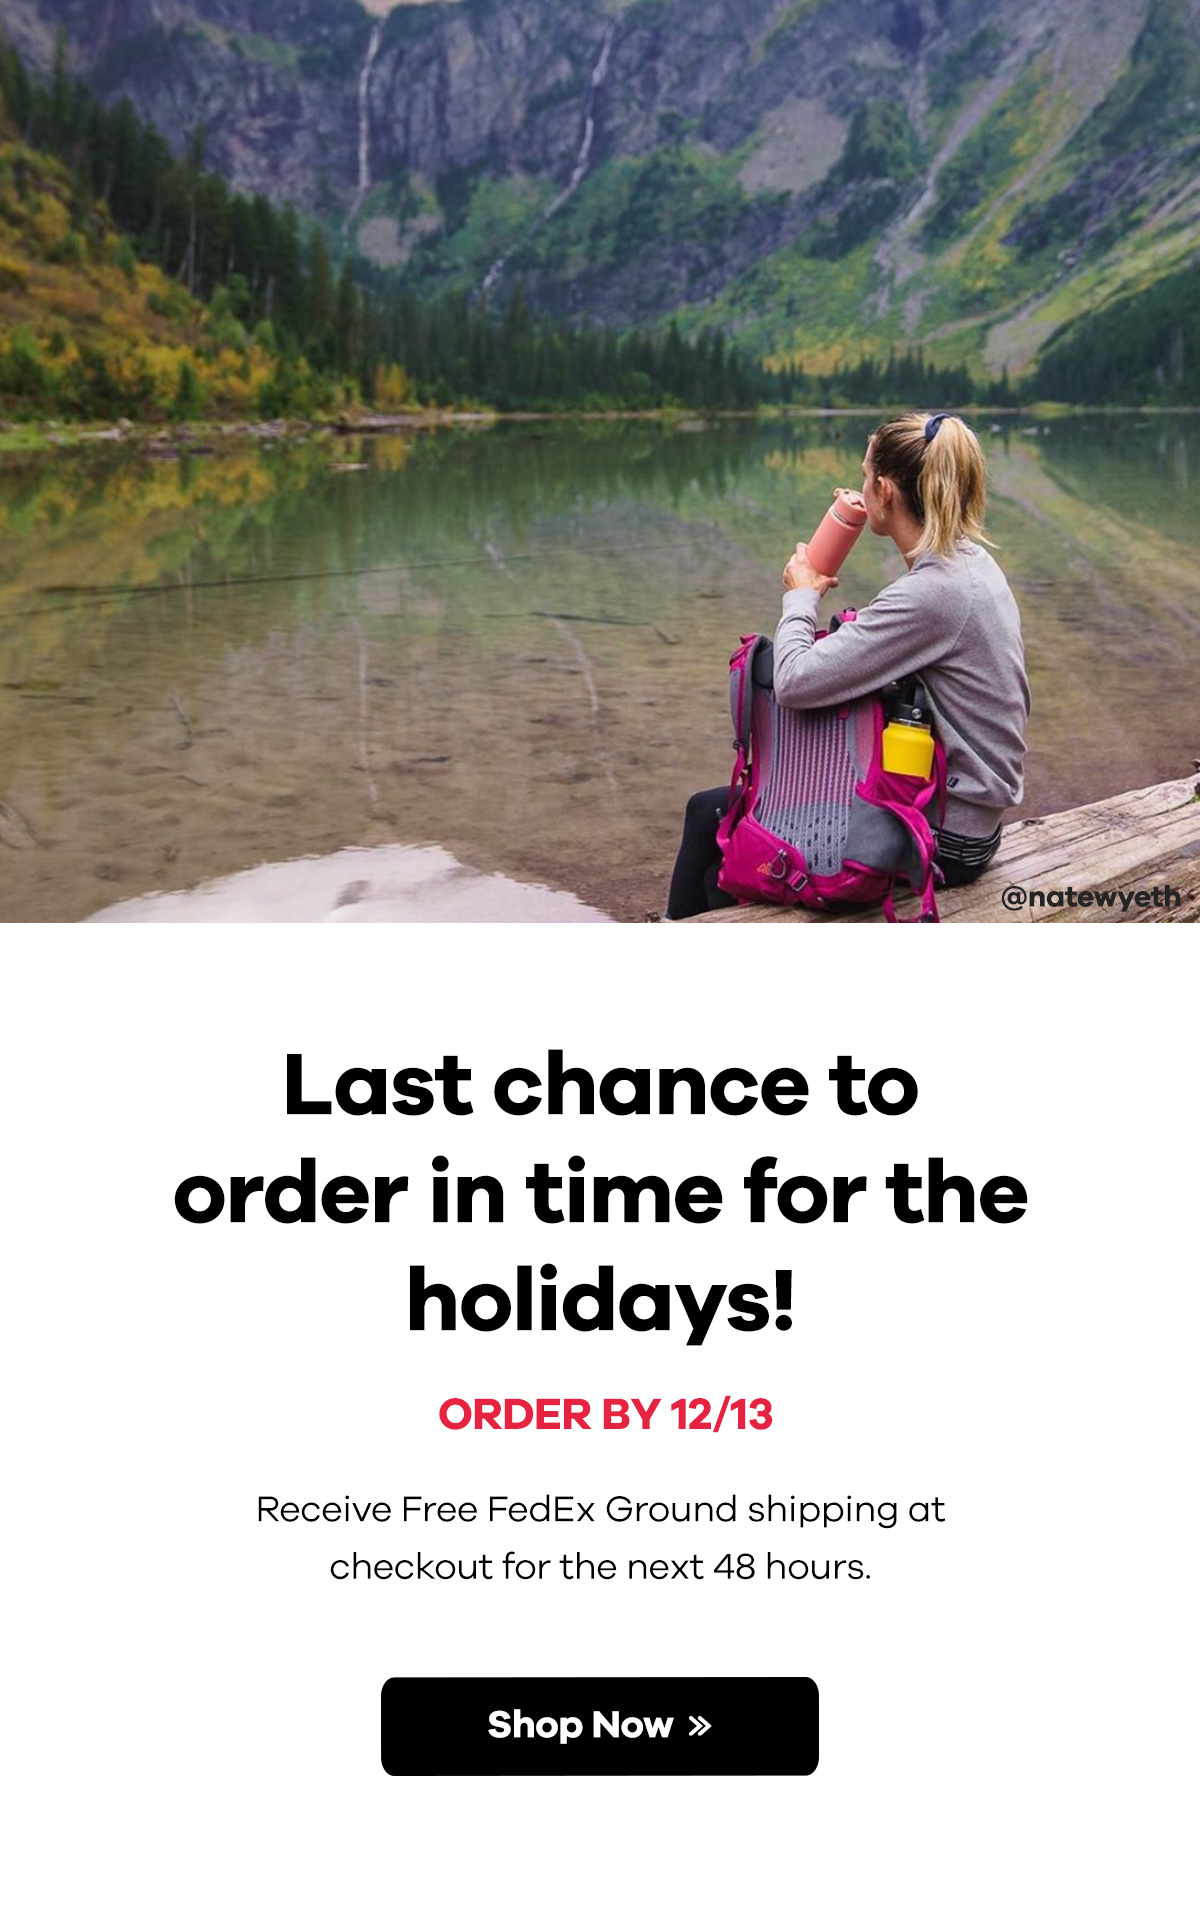 Last chance to order in time for the holidays! Order by 12/13 | Receive Free FedEx Ground shipping at checkout for the next 48 hours. | Shop Now >>